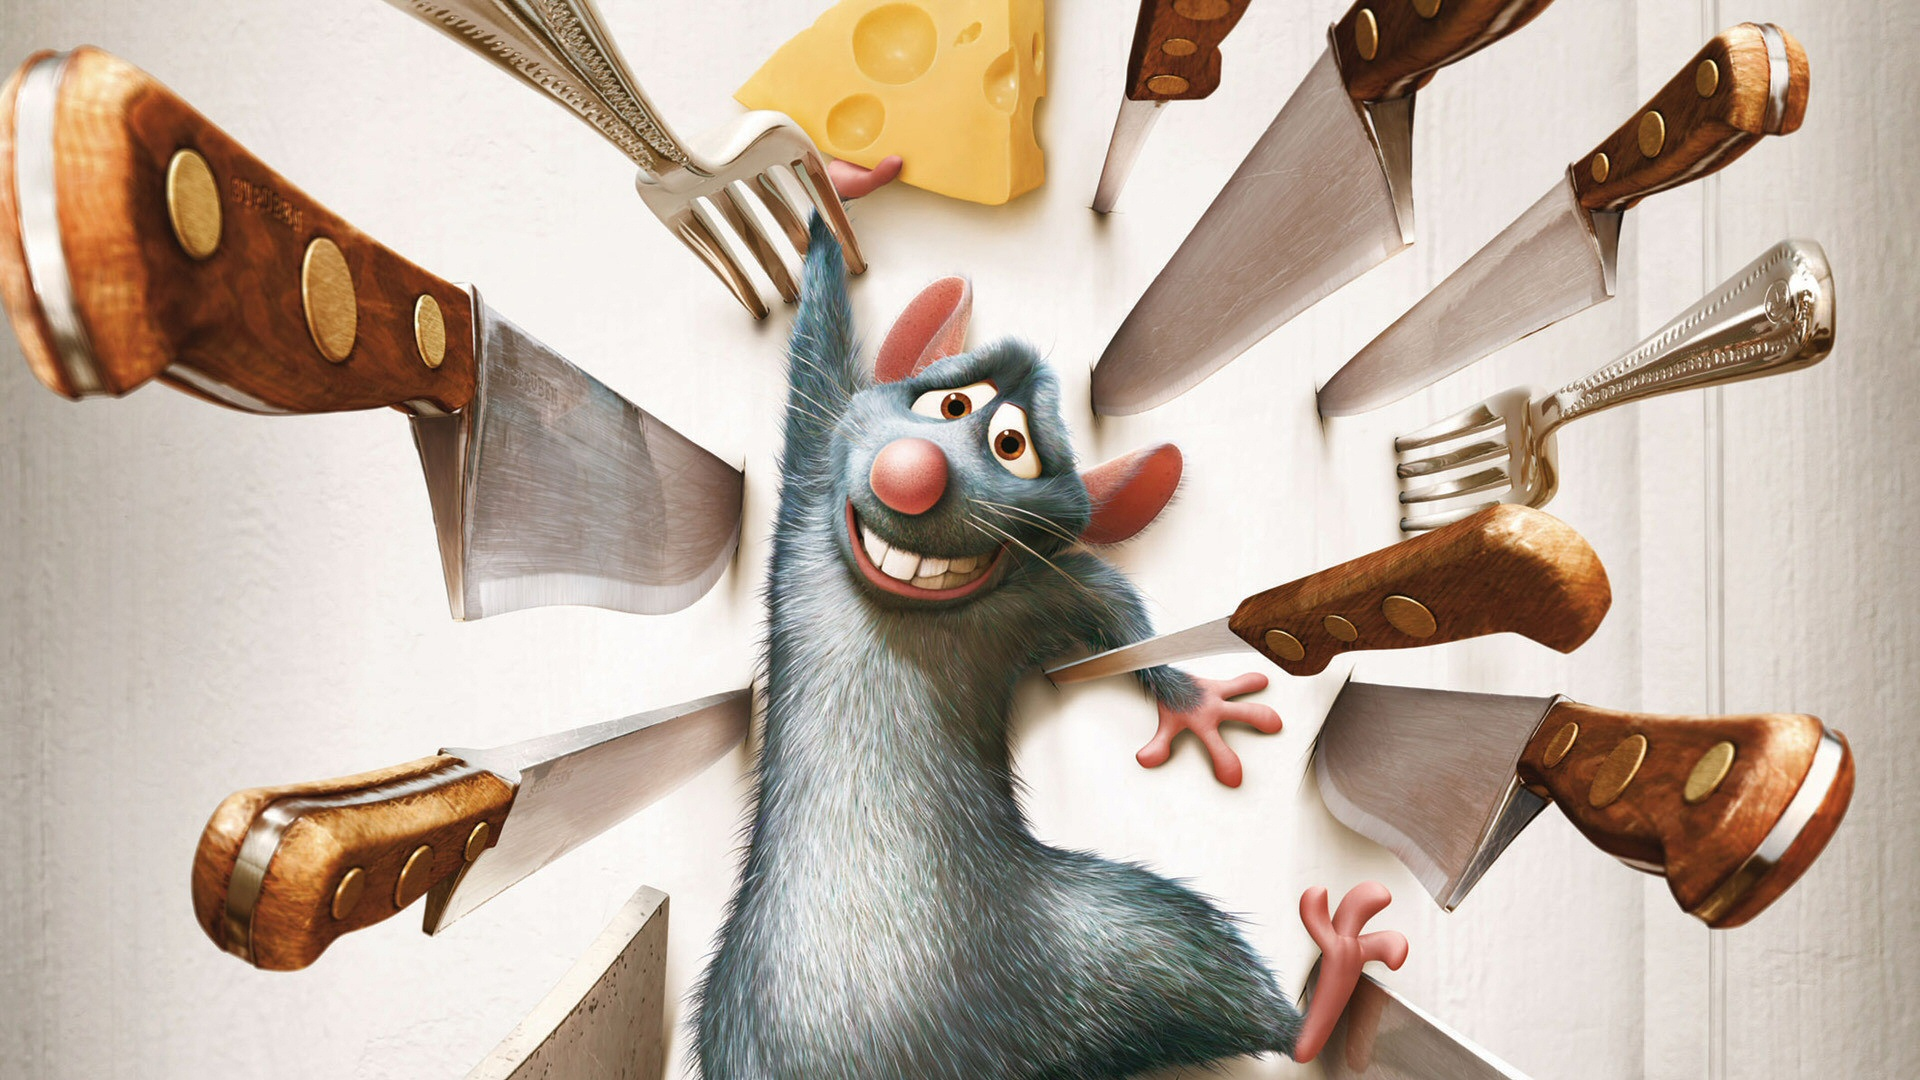 Yes, the first thing i thought of when I saw we were making Ratatouille was the movie